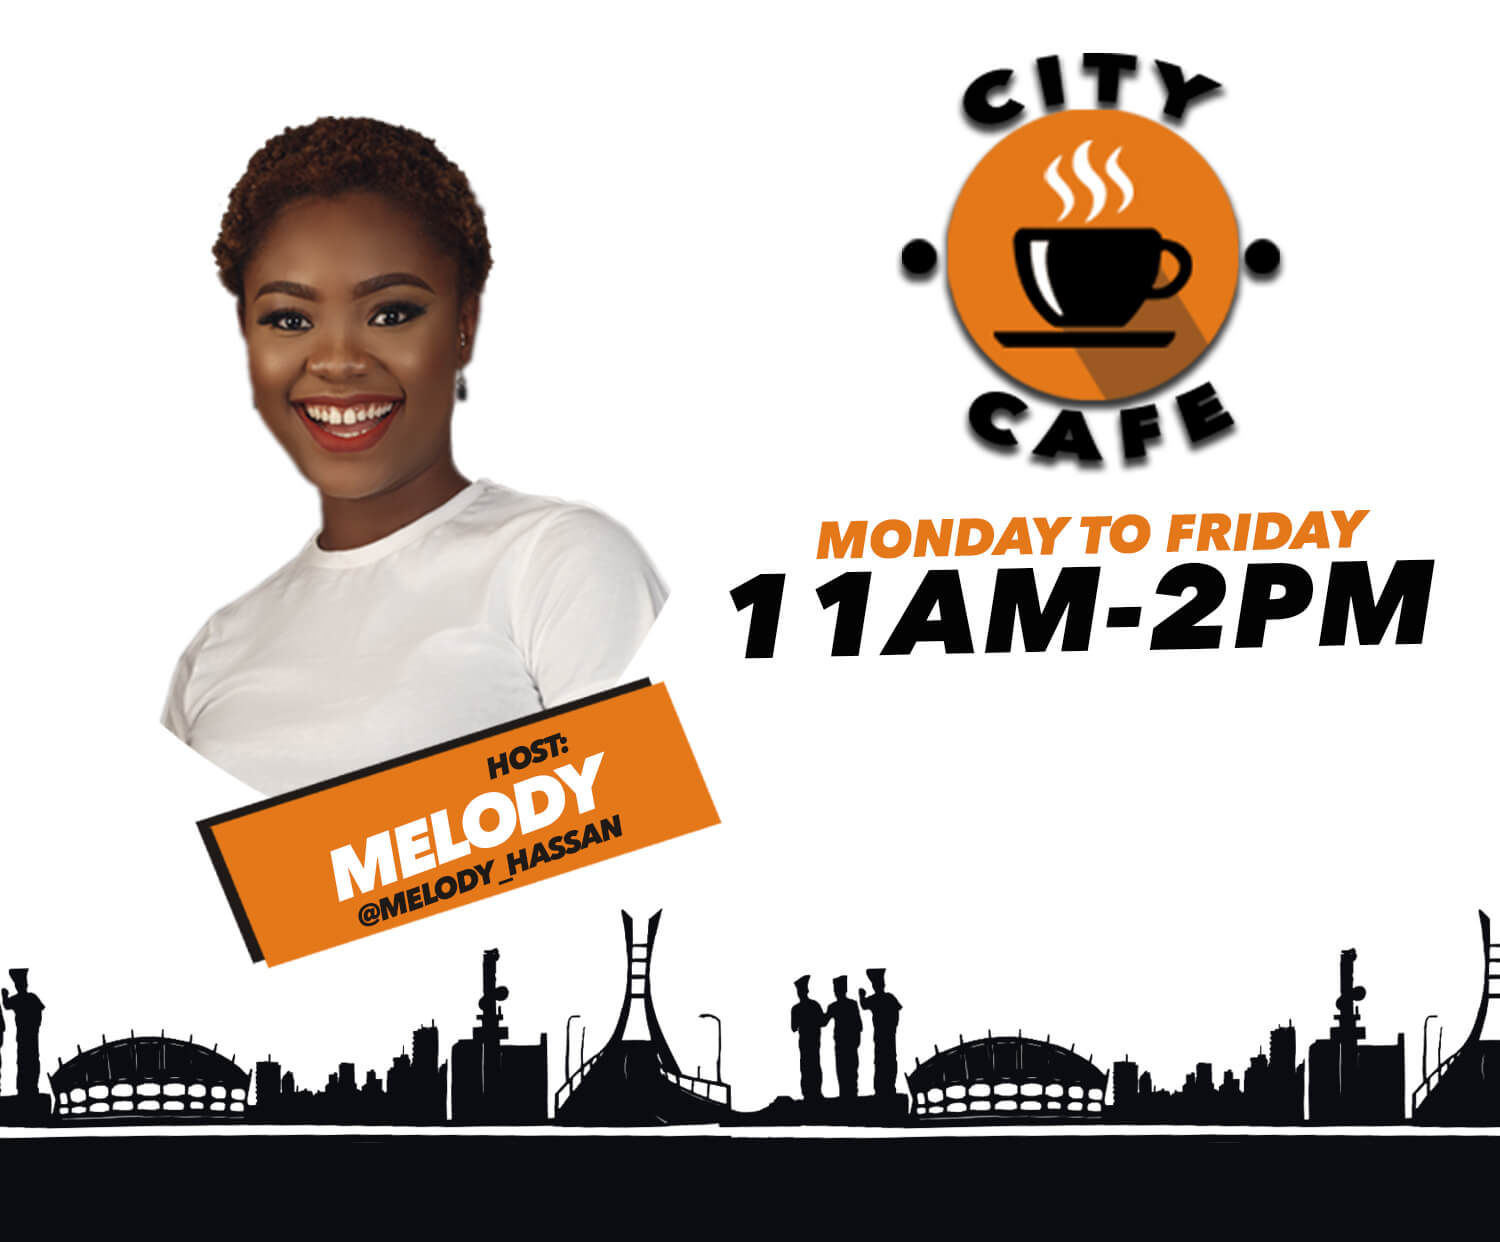 city105-1-fms-melody-hassan-is-fake-a-cheat